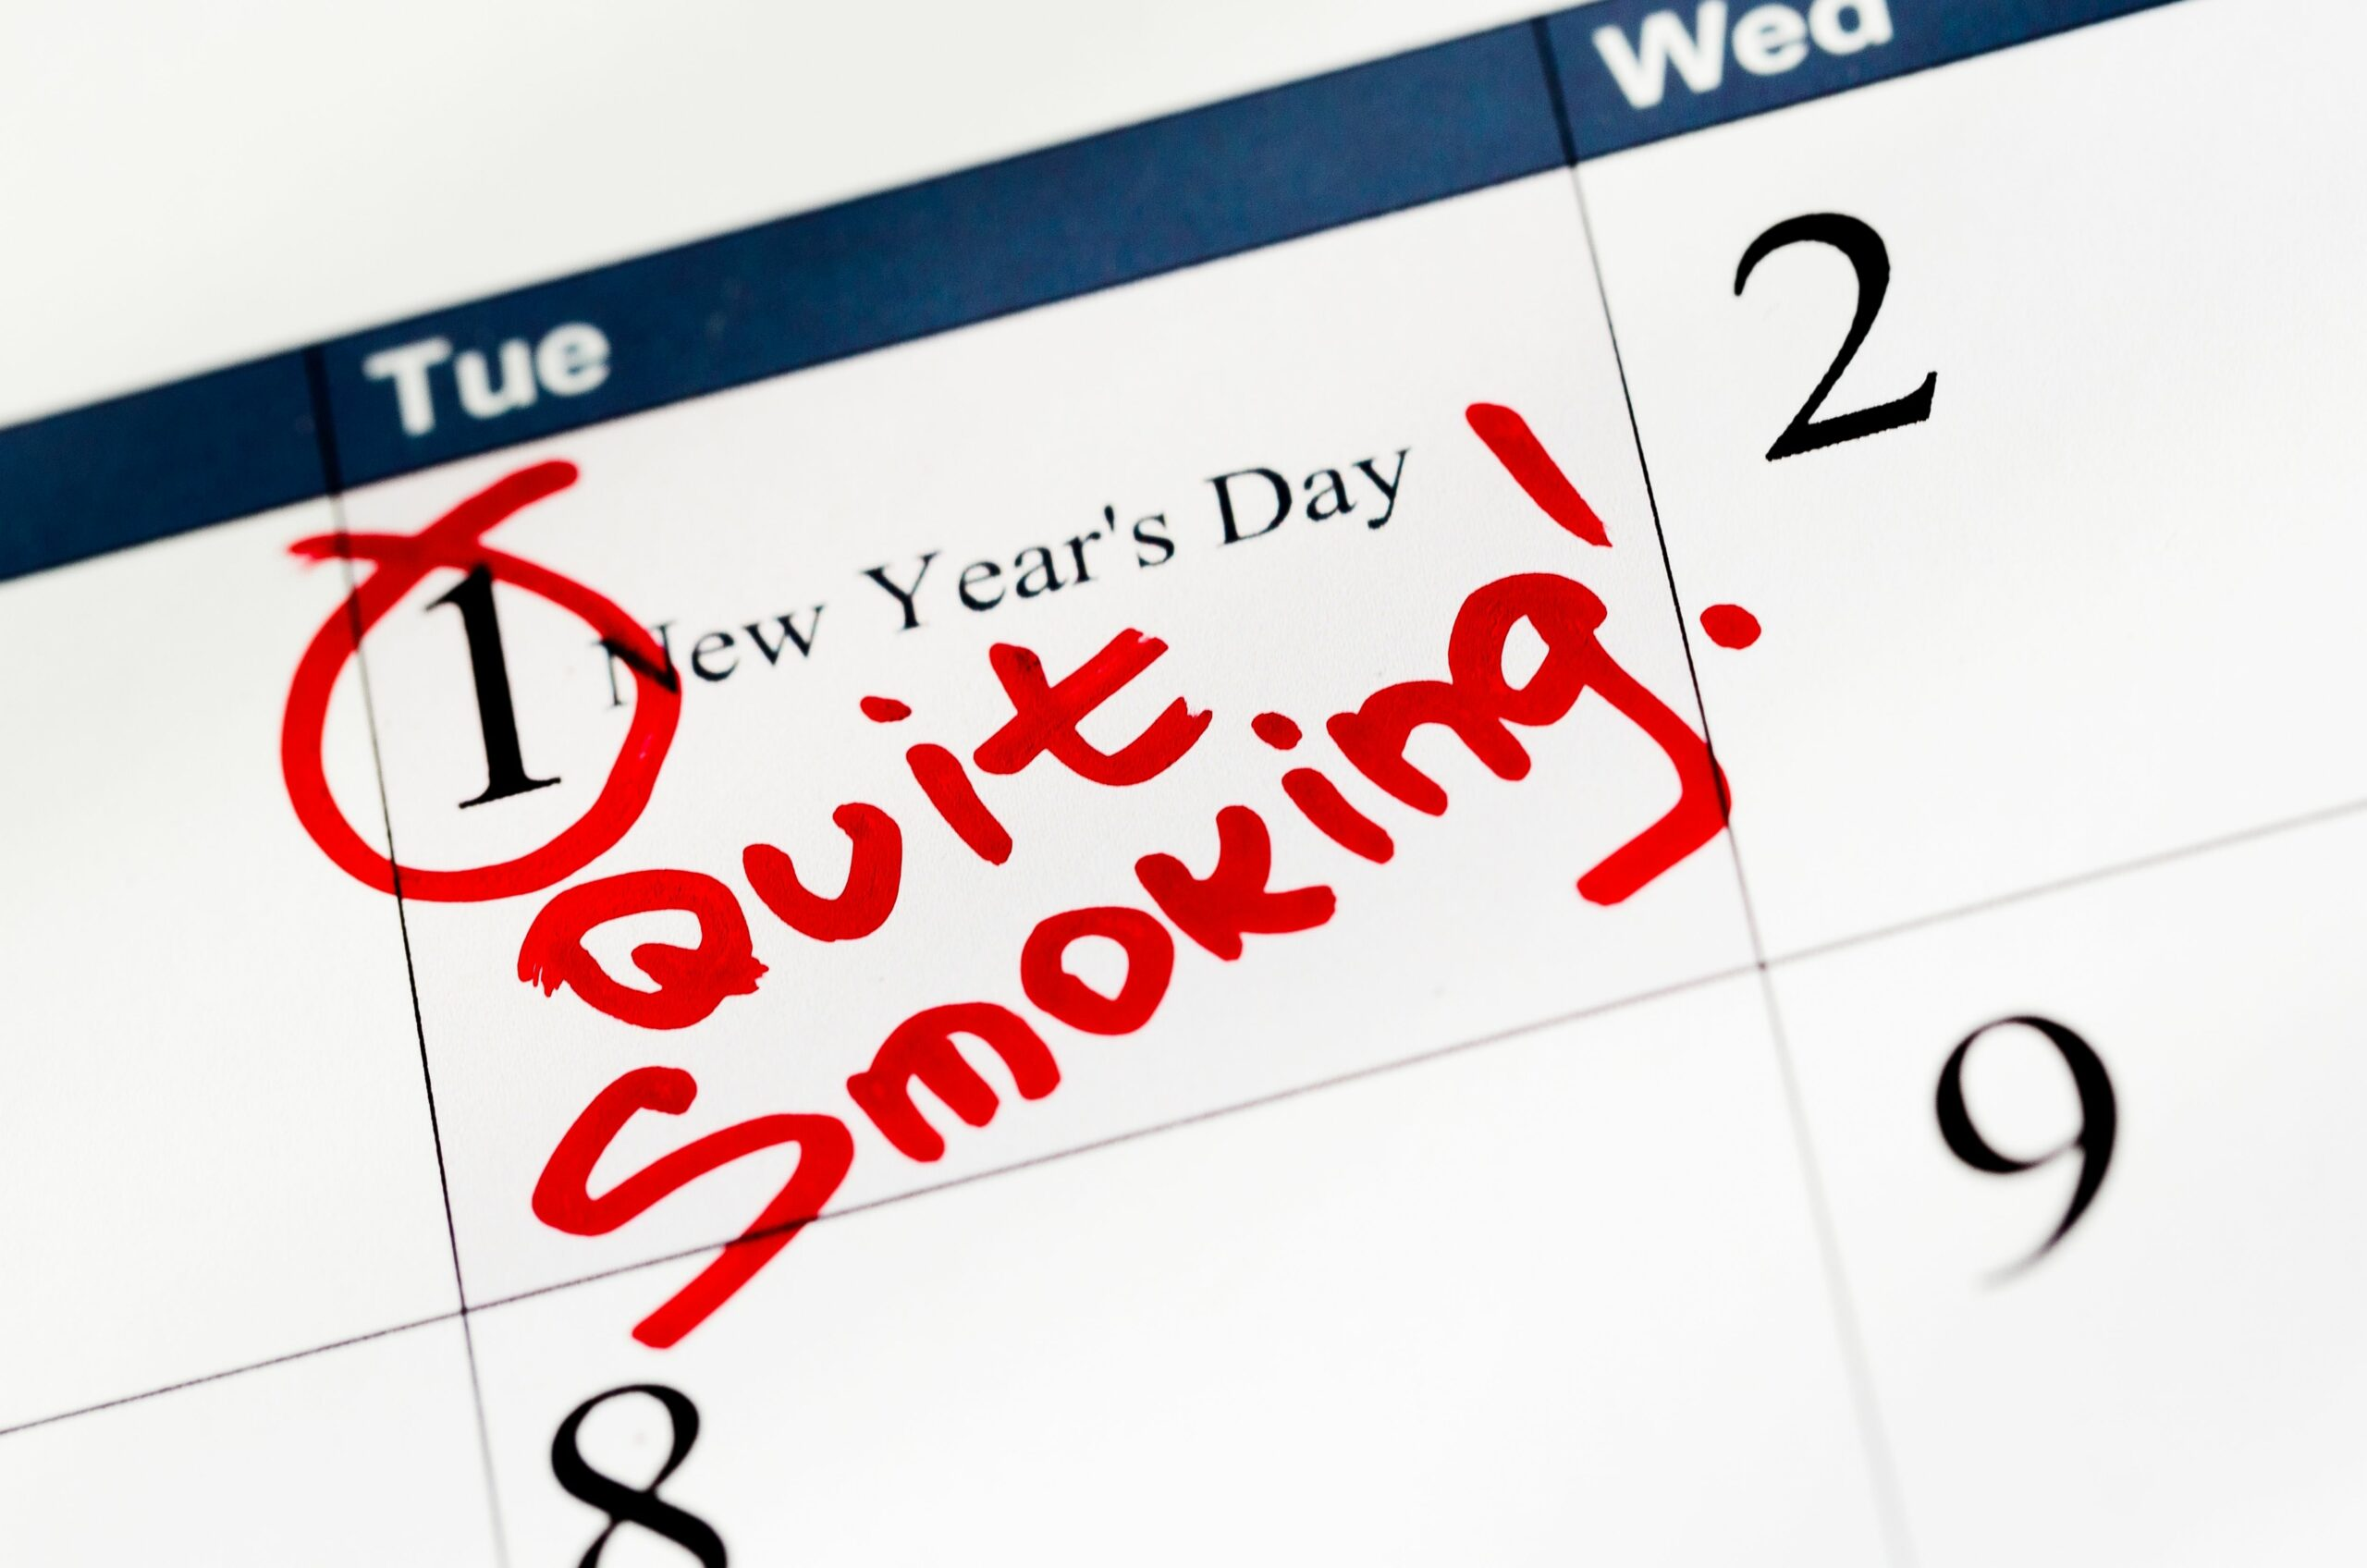 Quit Smoking New Year's Resolution Marked on Calendar